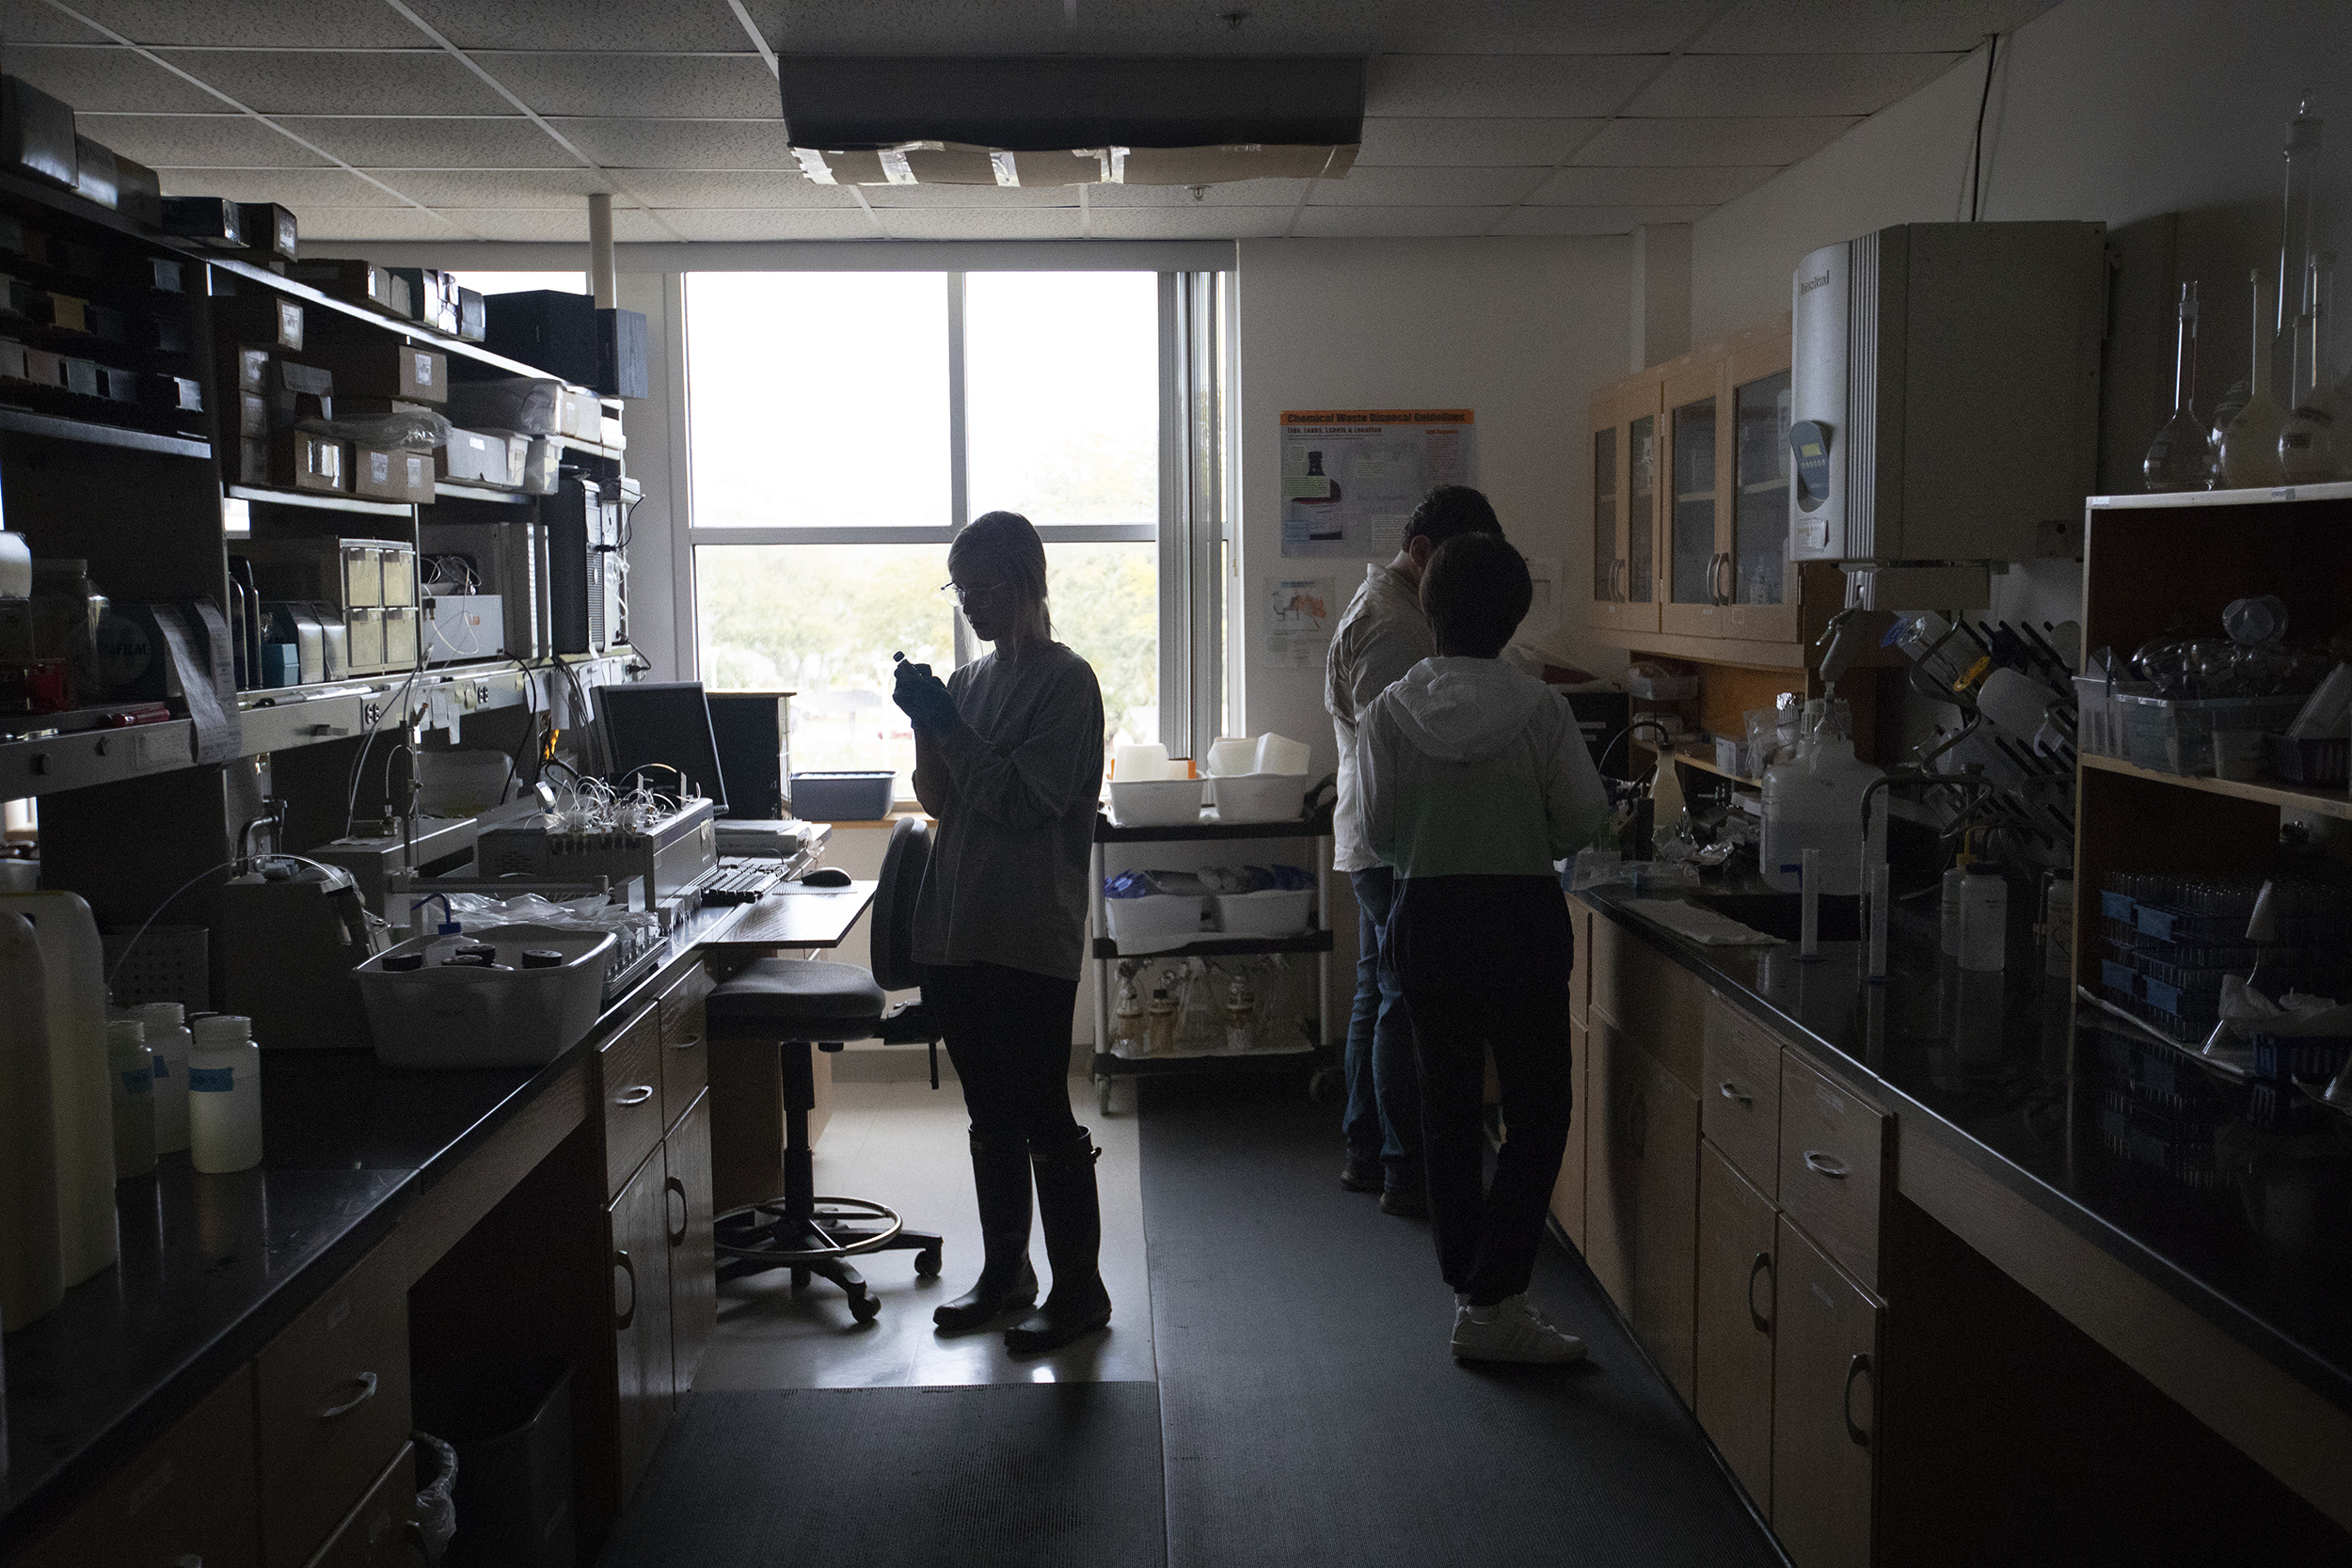 Students working in a laboratory are silhouetted by large windows as they work.